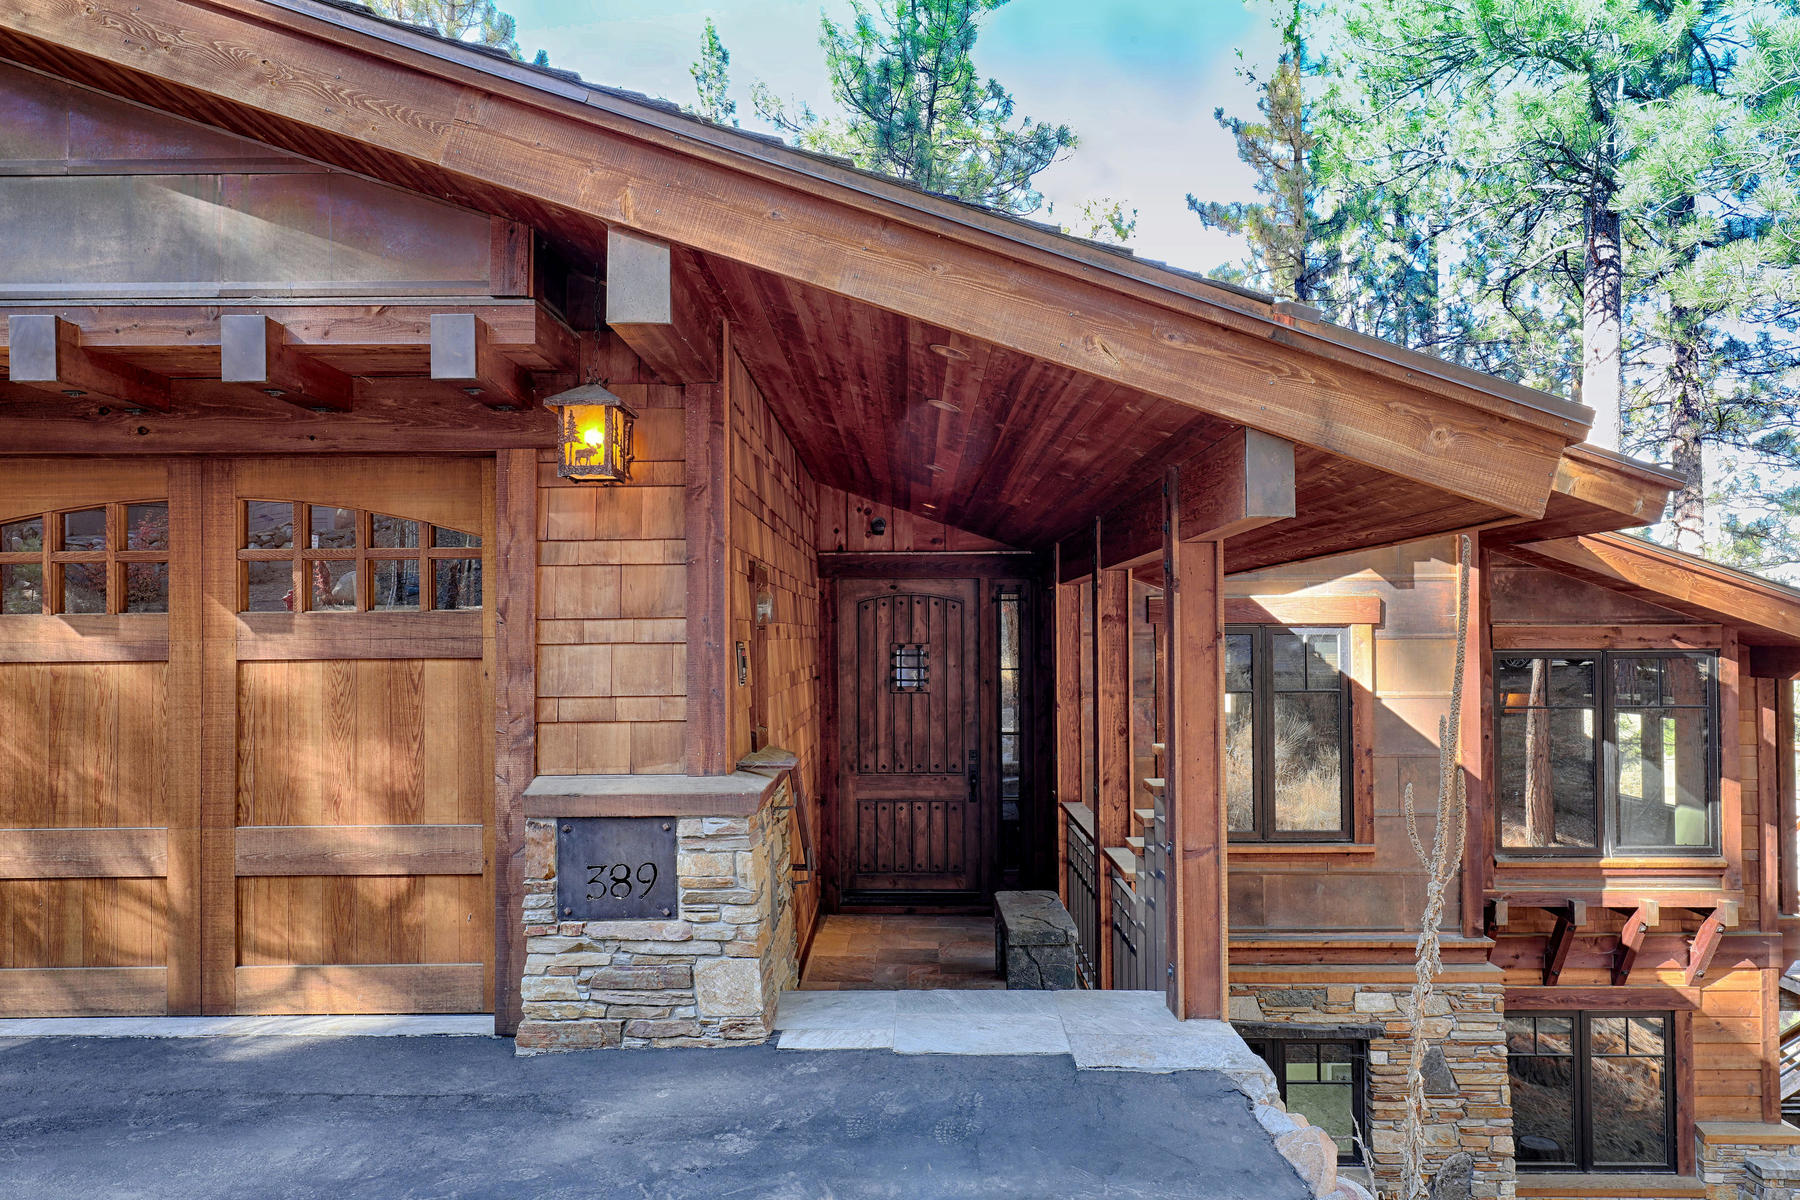 Single Family Homes por un Venta en 389 Skidder Trail, Truckee Ca 96161 389 Skidder Trail Truckee, California 96161 Estados Unidos